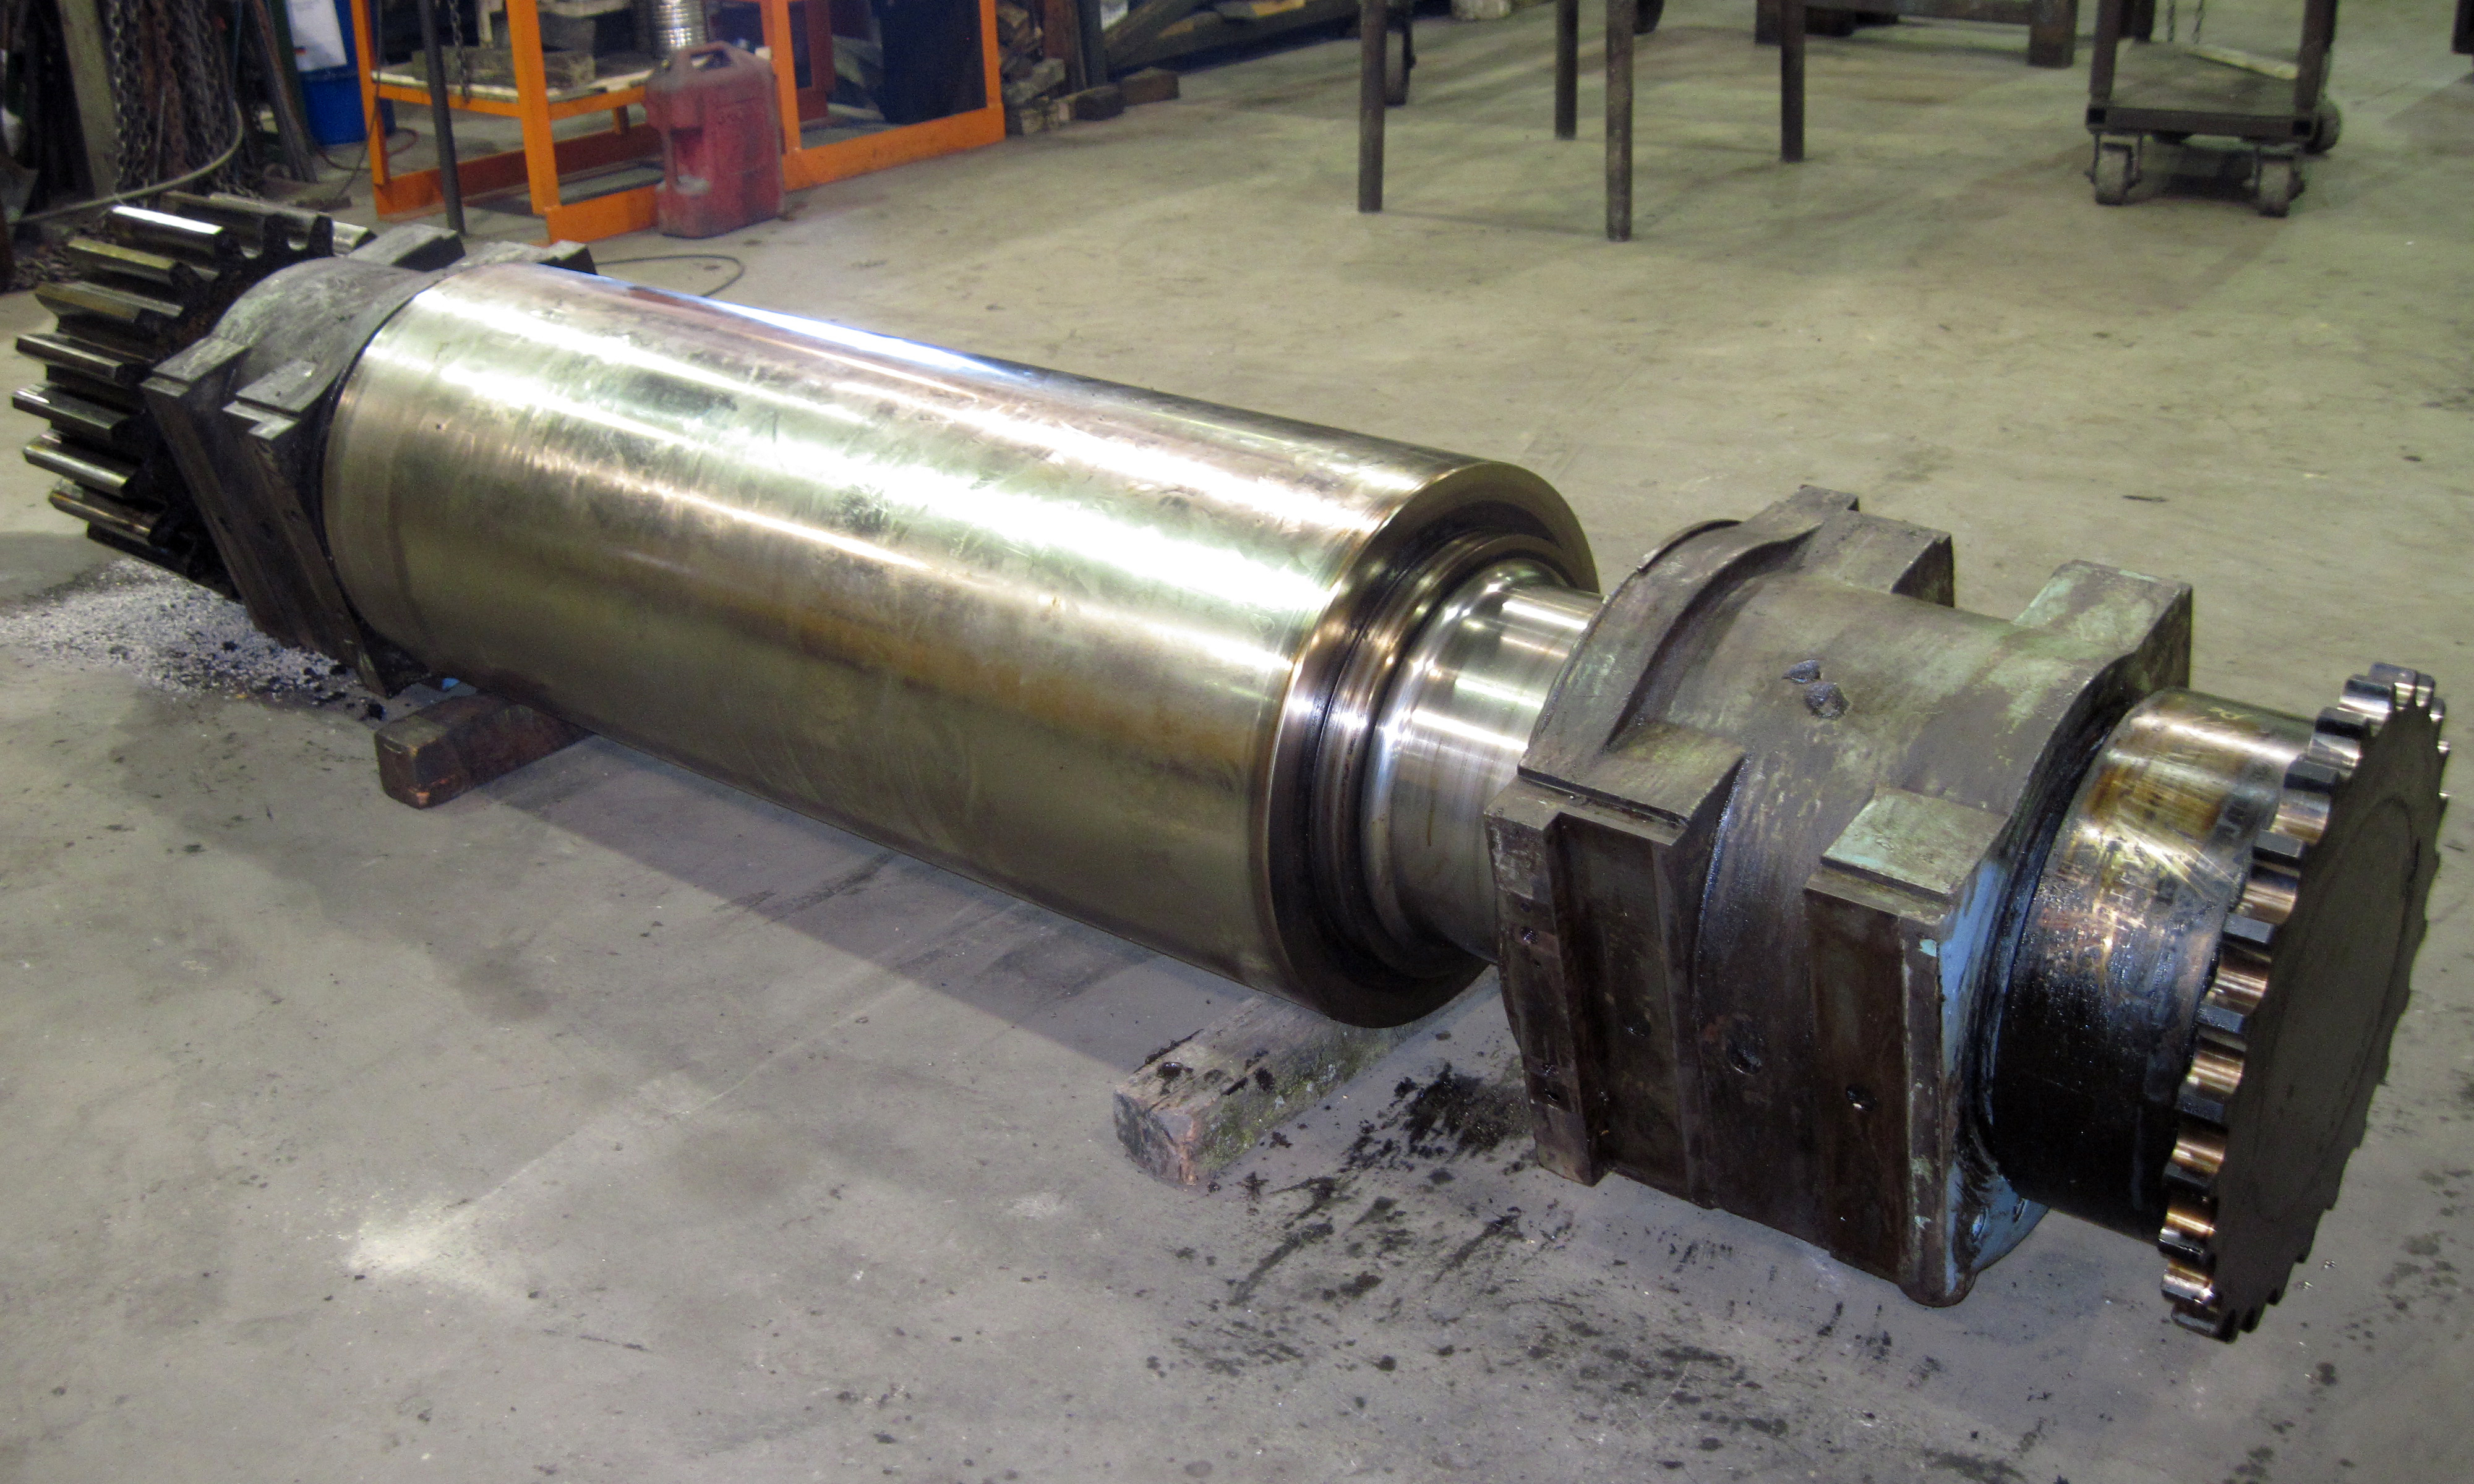 Rubber mill roll-repair bearing areas and replace bronze bearings and regrind face